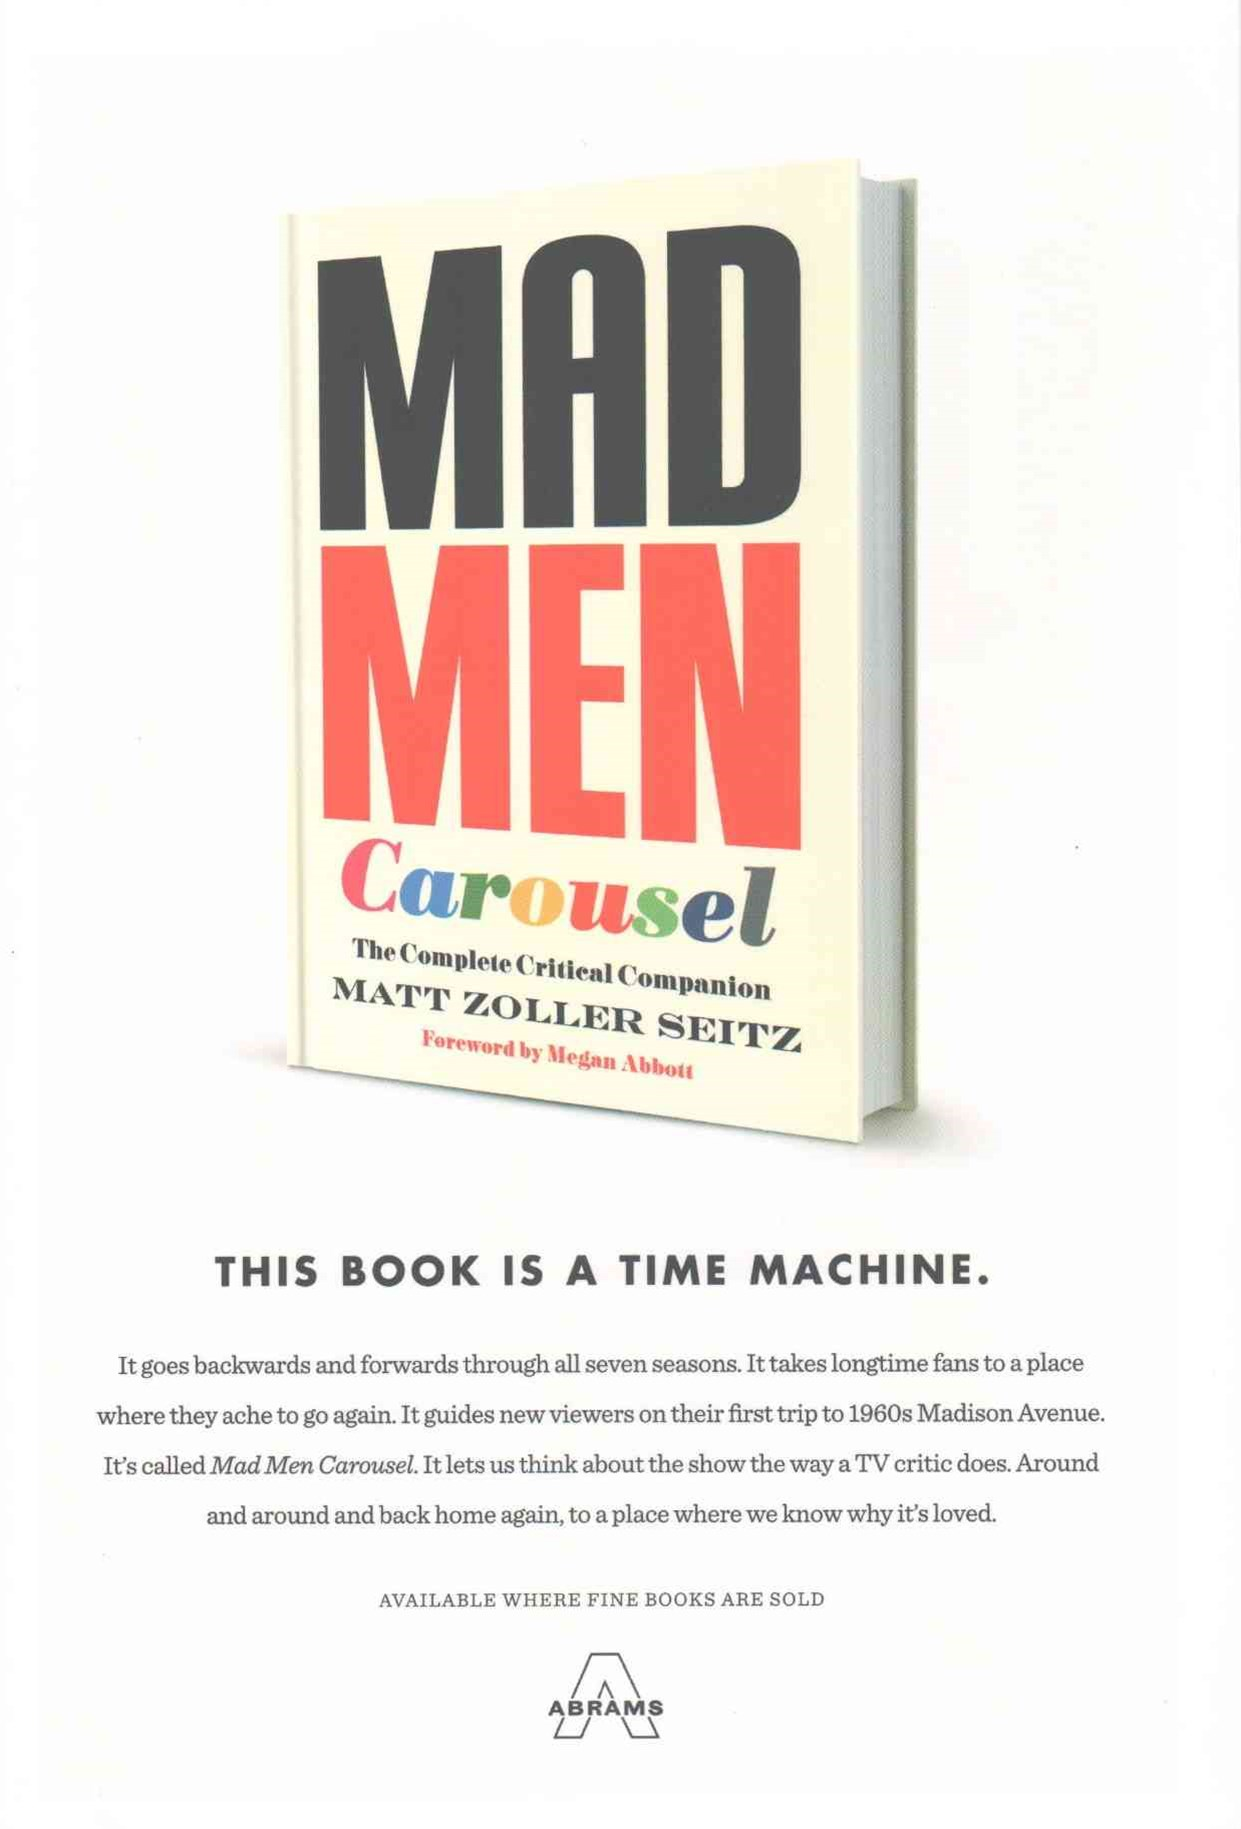 Mad Men Carousel: A Complete Critical Companion